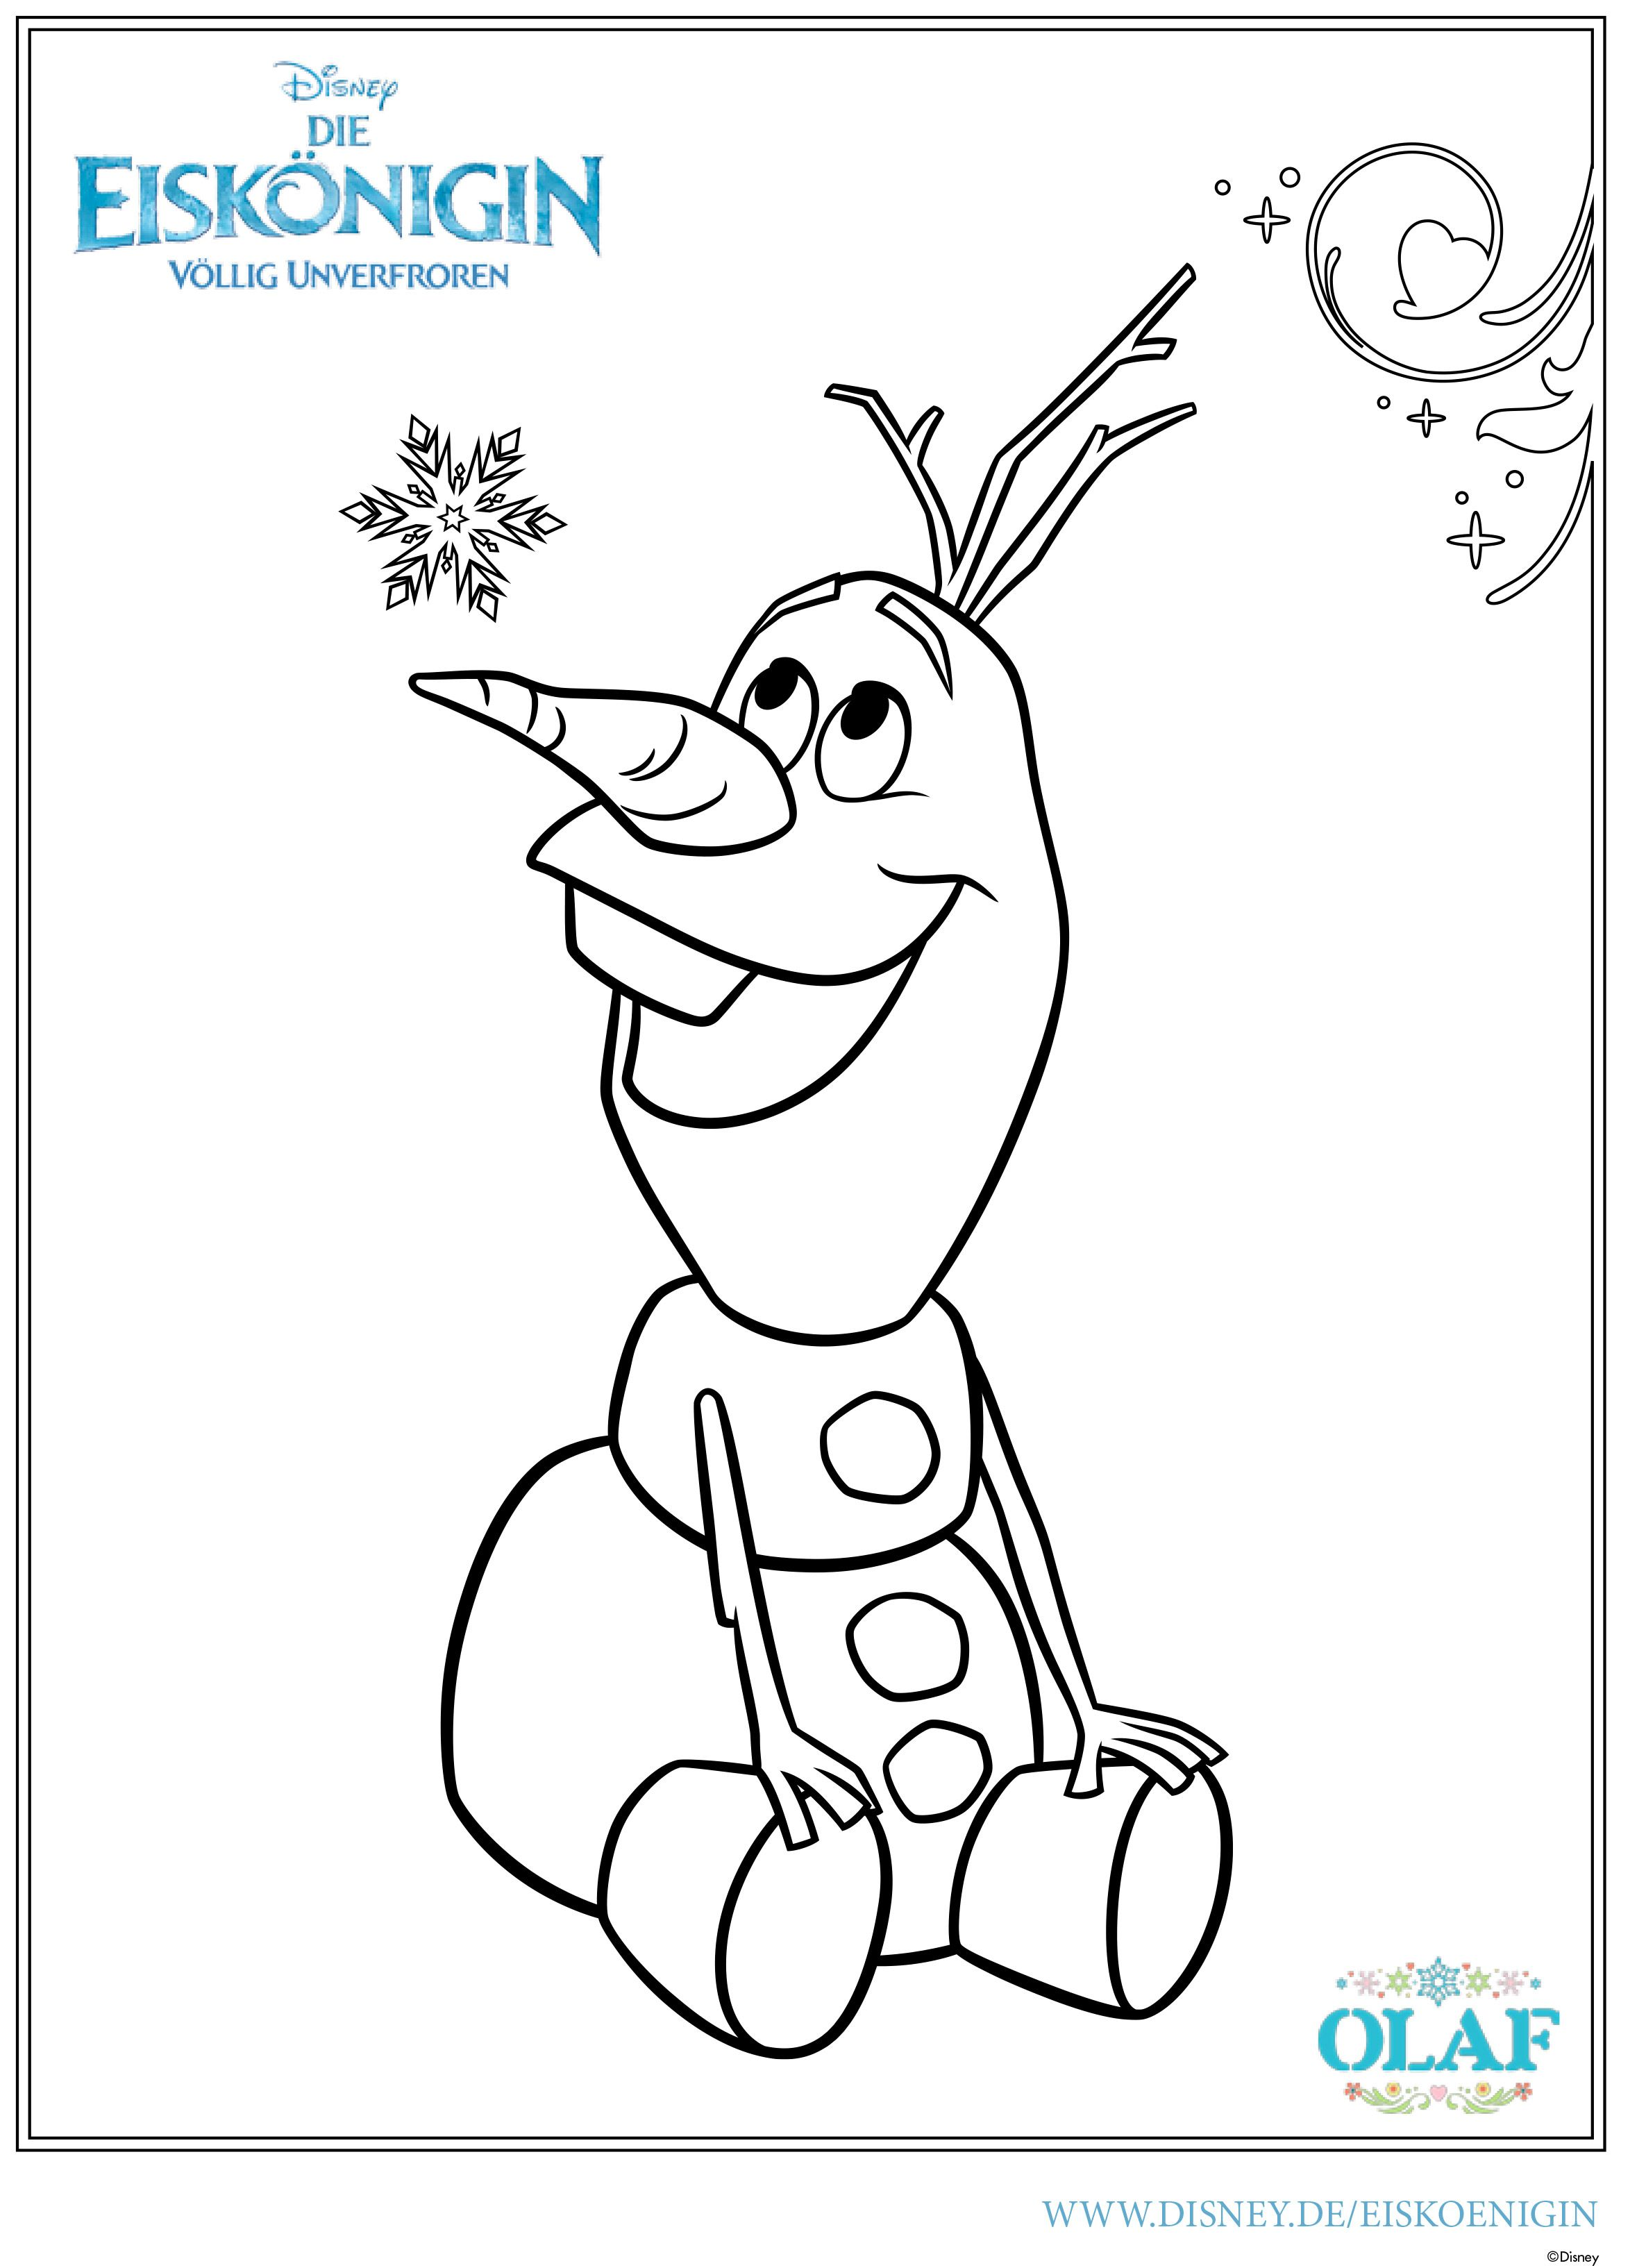 Die Eiskönigin Ausmalbilder Anna Und Elsa Als Kinder : Ausmalbild Olaf Graphic Pinterest Xmas Cards And Craft